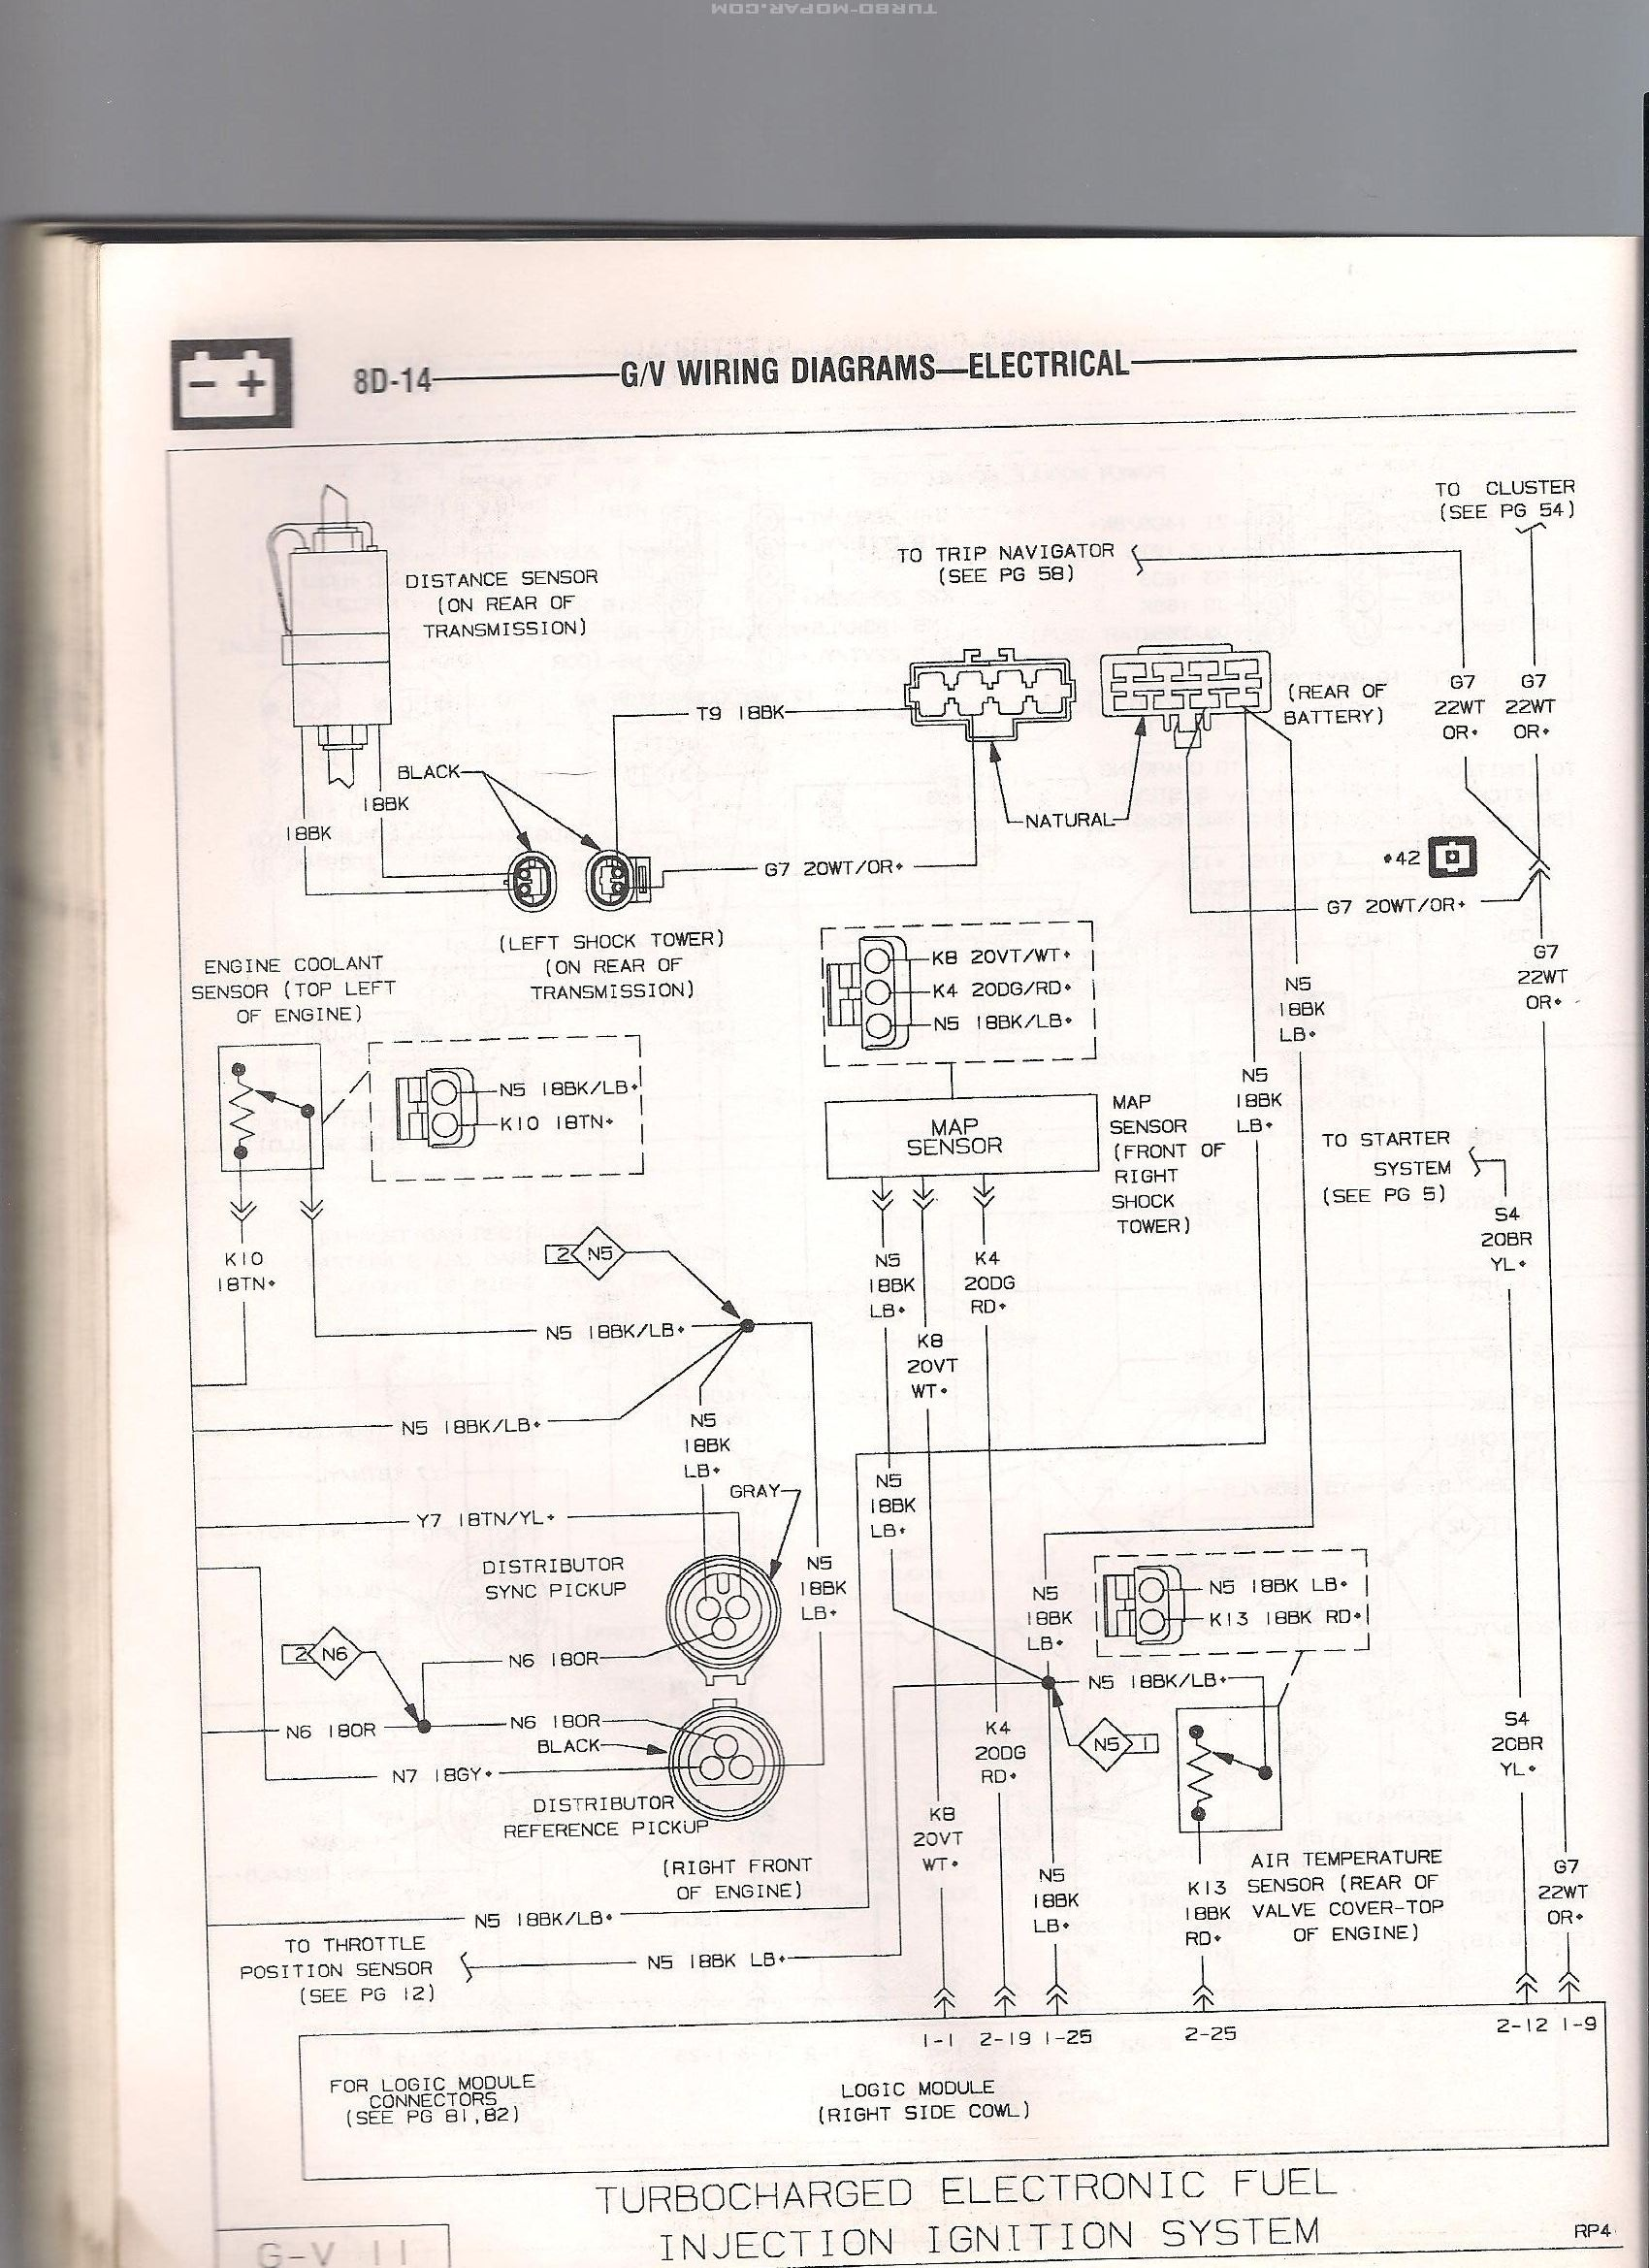 pg_11 overcharging ford 7740 wiring diagram at bayanpartner.co